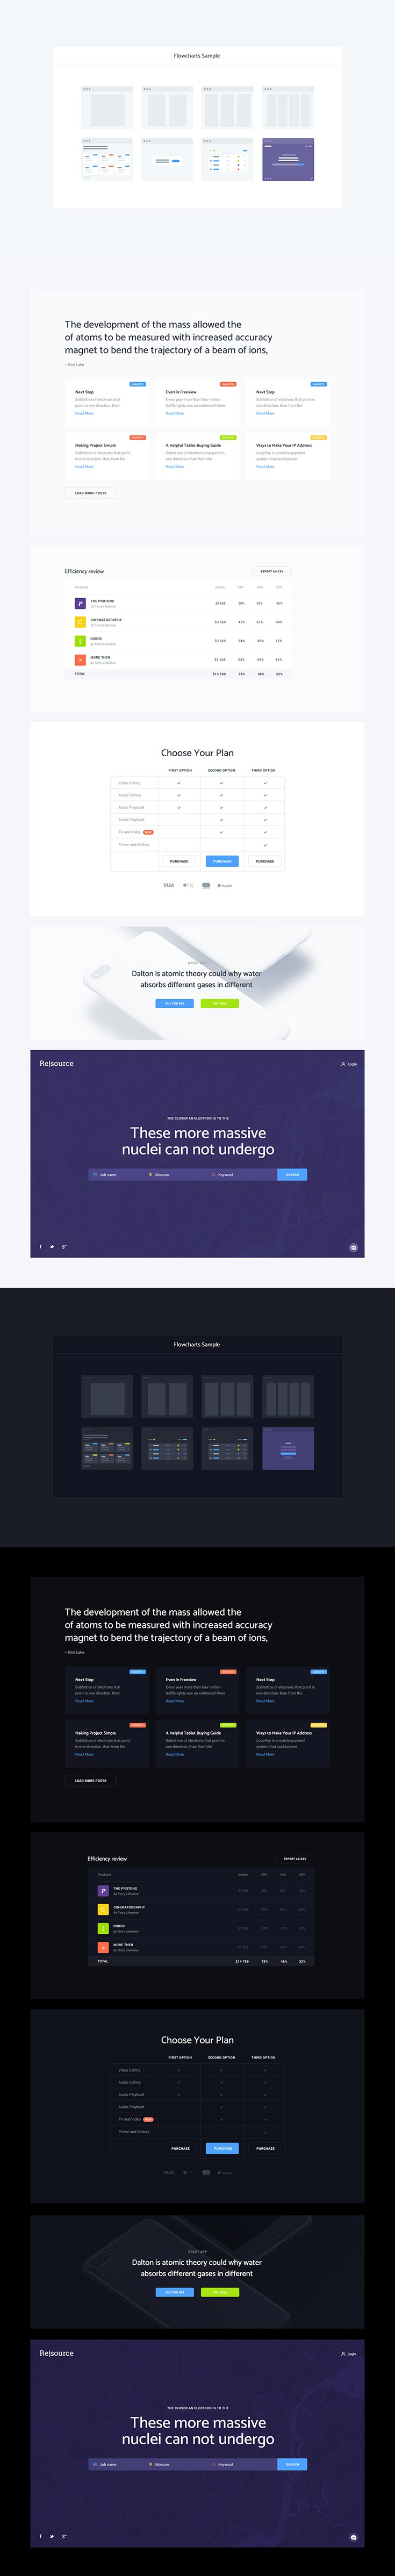 Free UI Kit Resource is a Beautiful pack of UI components and flowcharts in one style. In two color variations: Dark and Light.